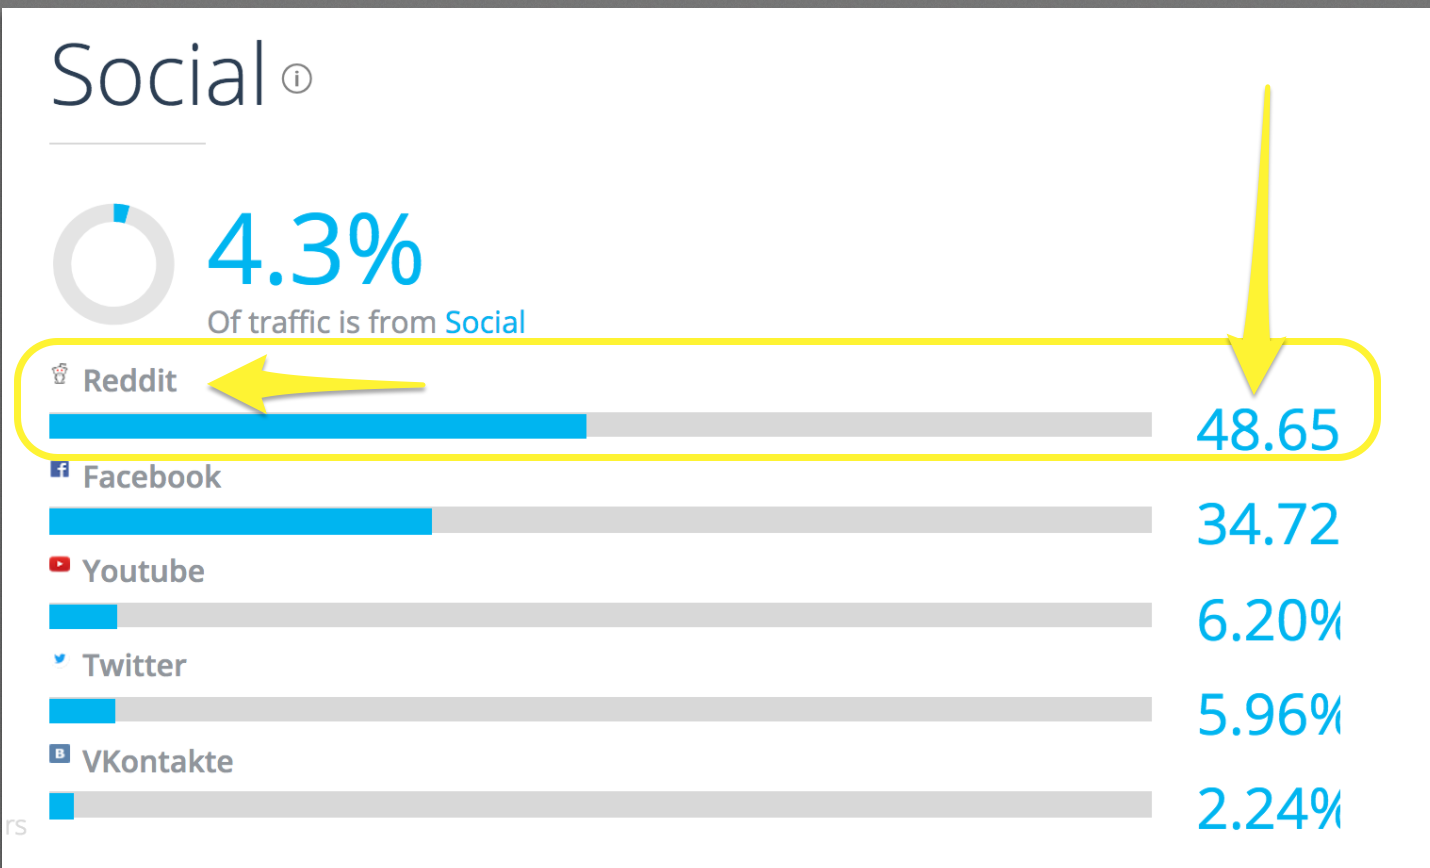 Screenshot showing the social traffic sources for Supreme